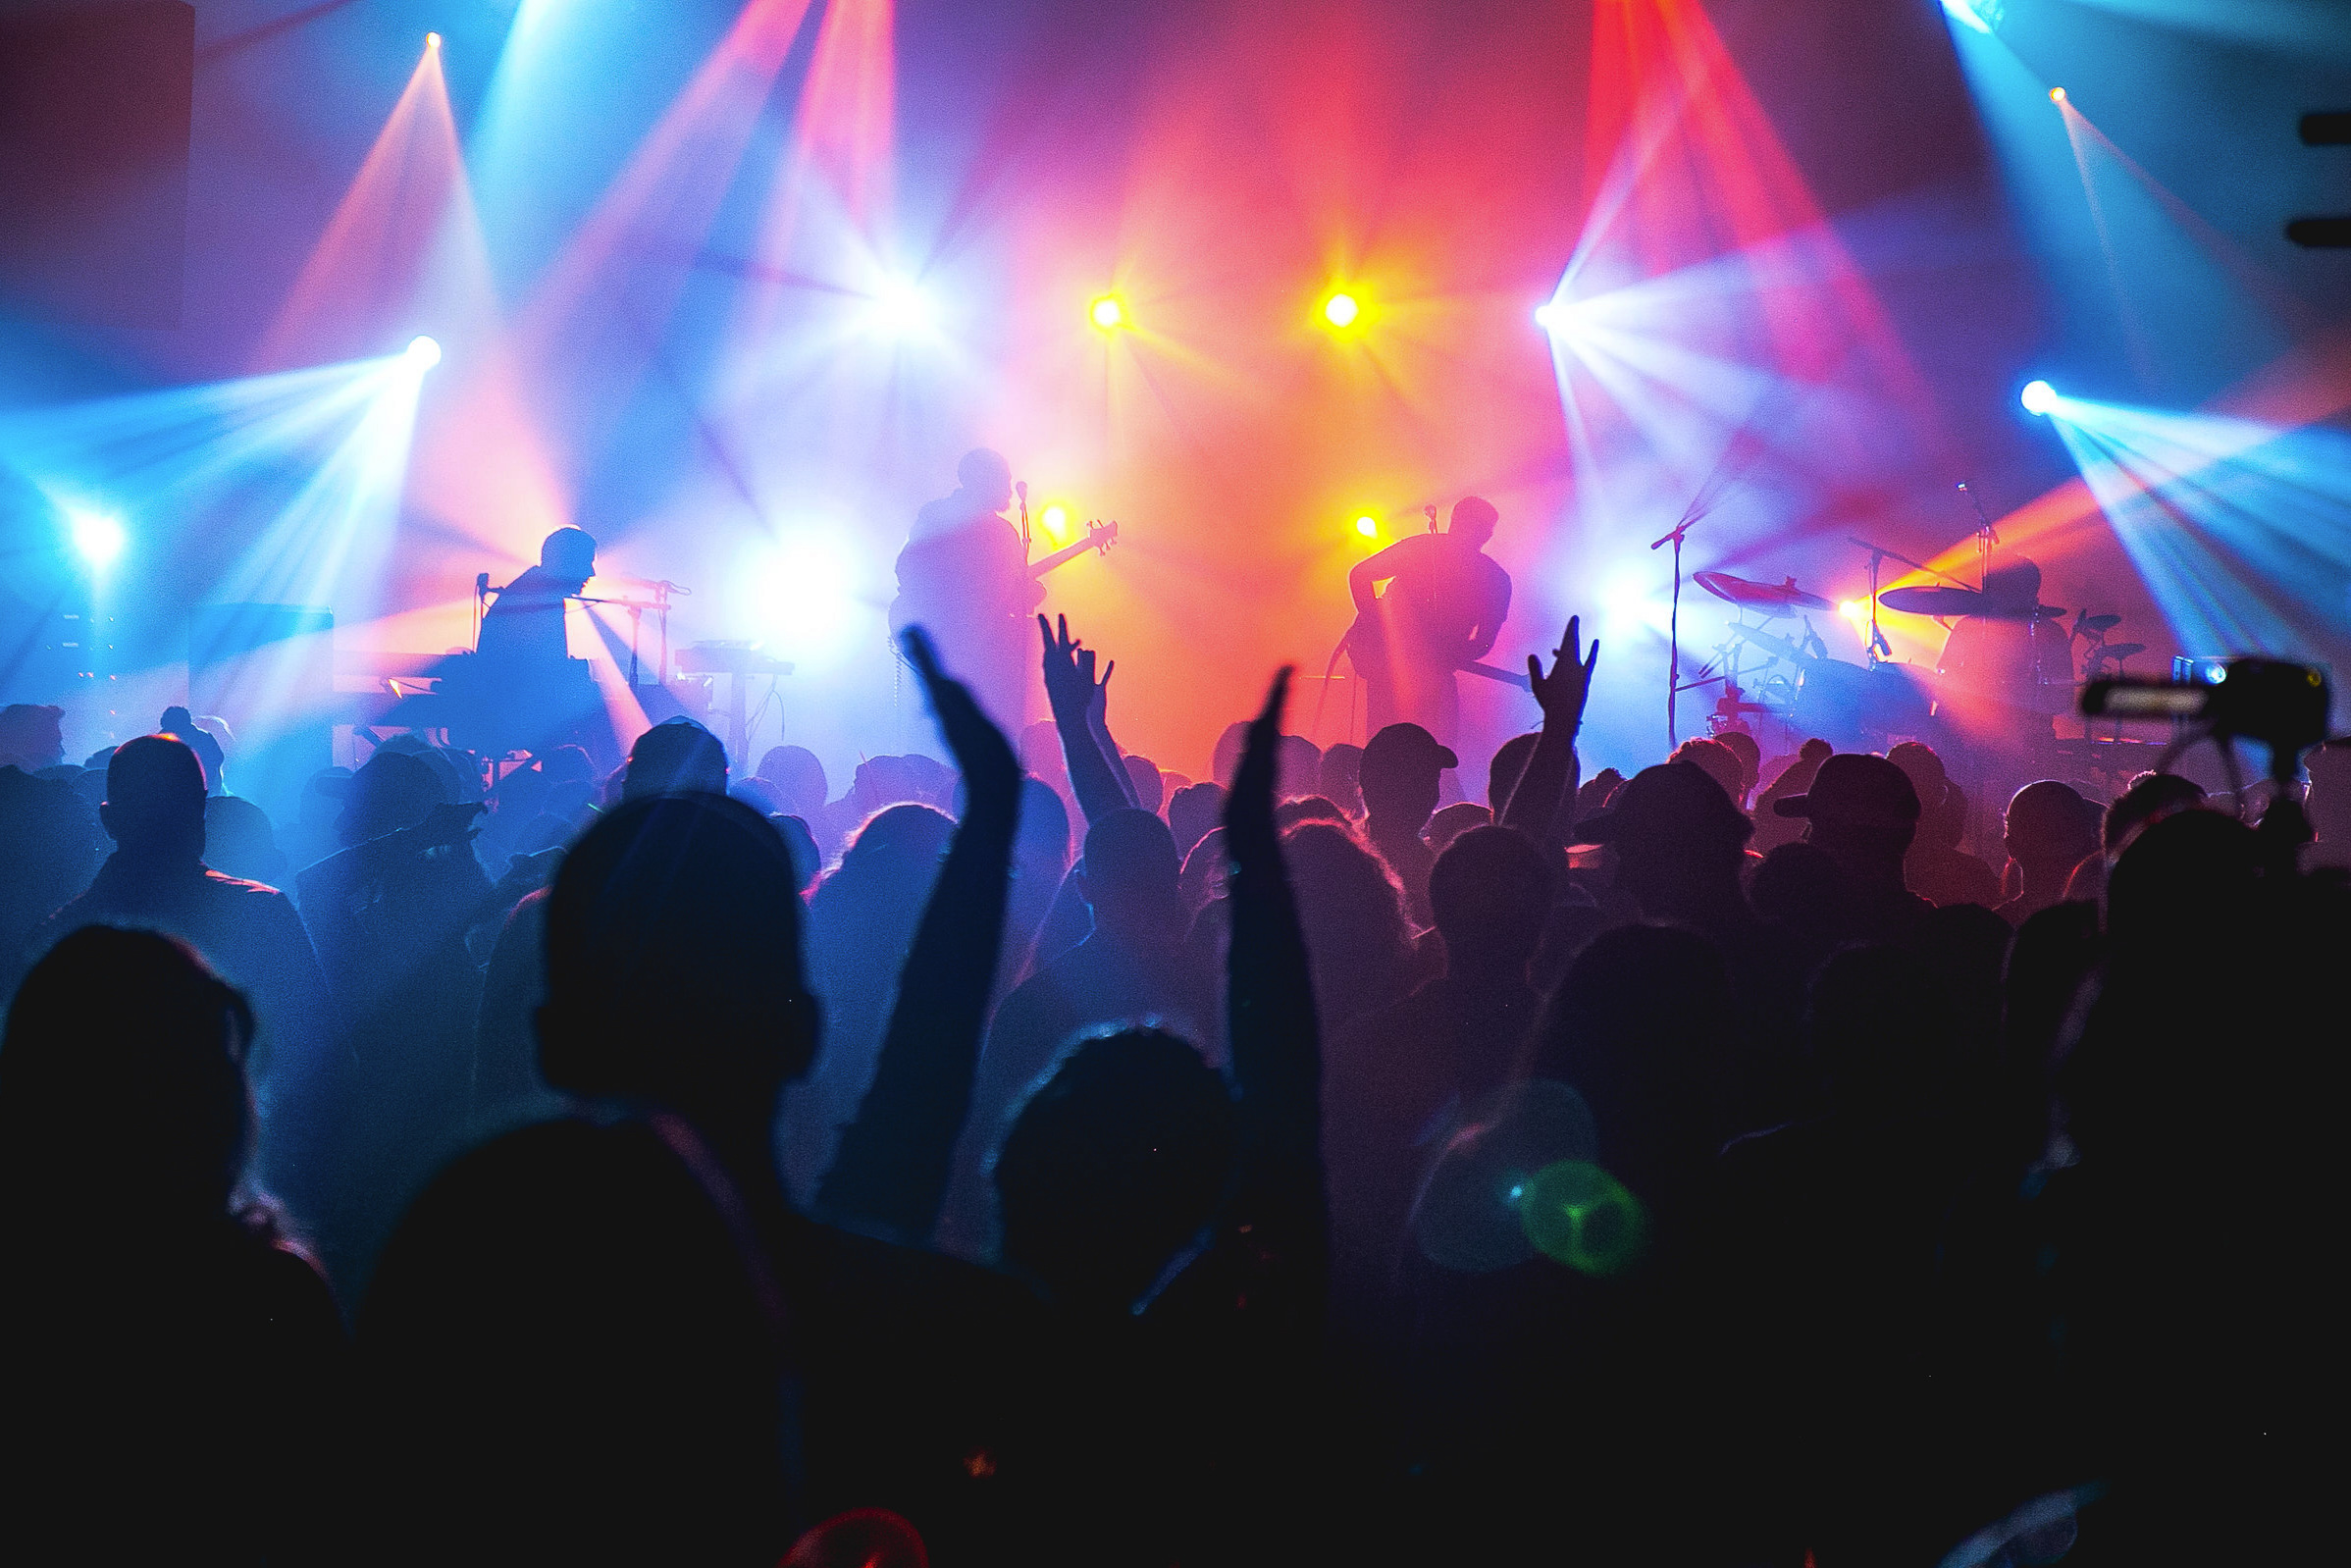 Events - Live events, concerts, corporate events & trade shows